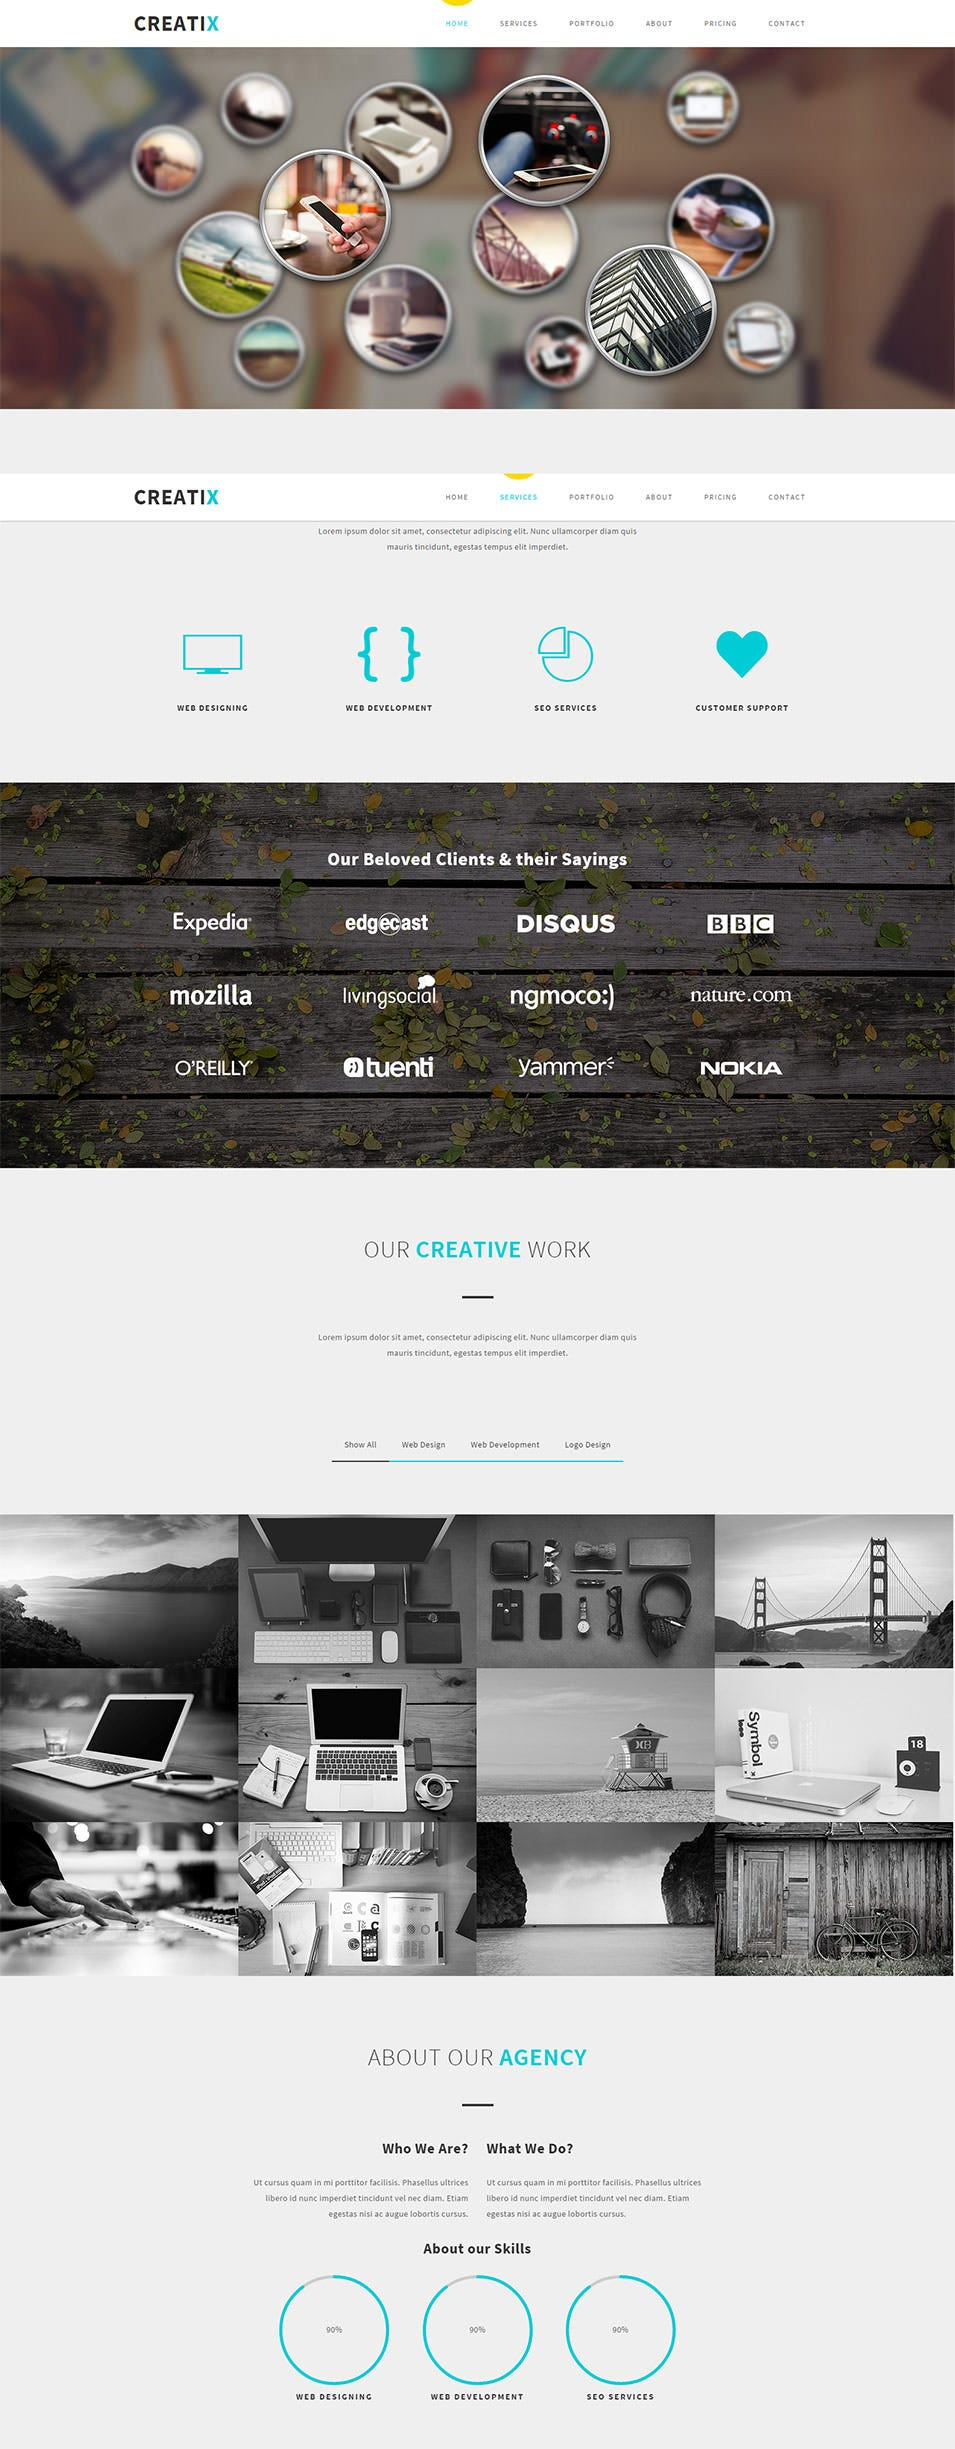 25+ Best Free CSS3 Websites Templates for Design Inspiration ...